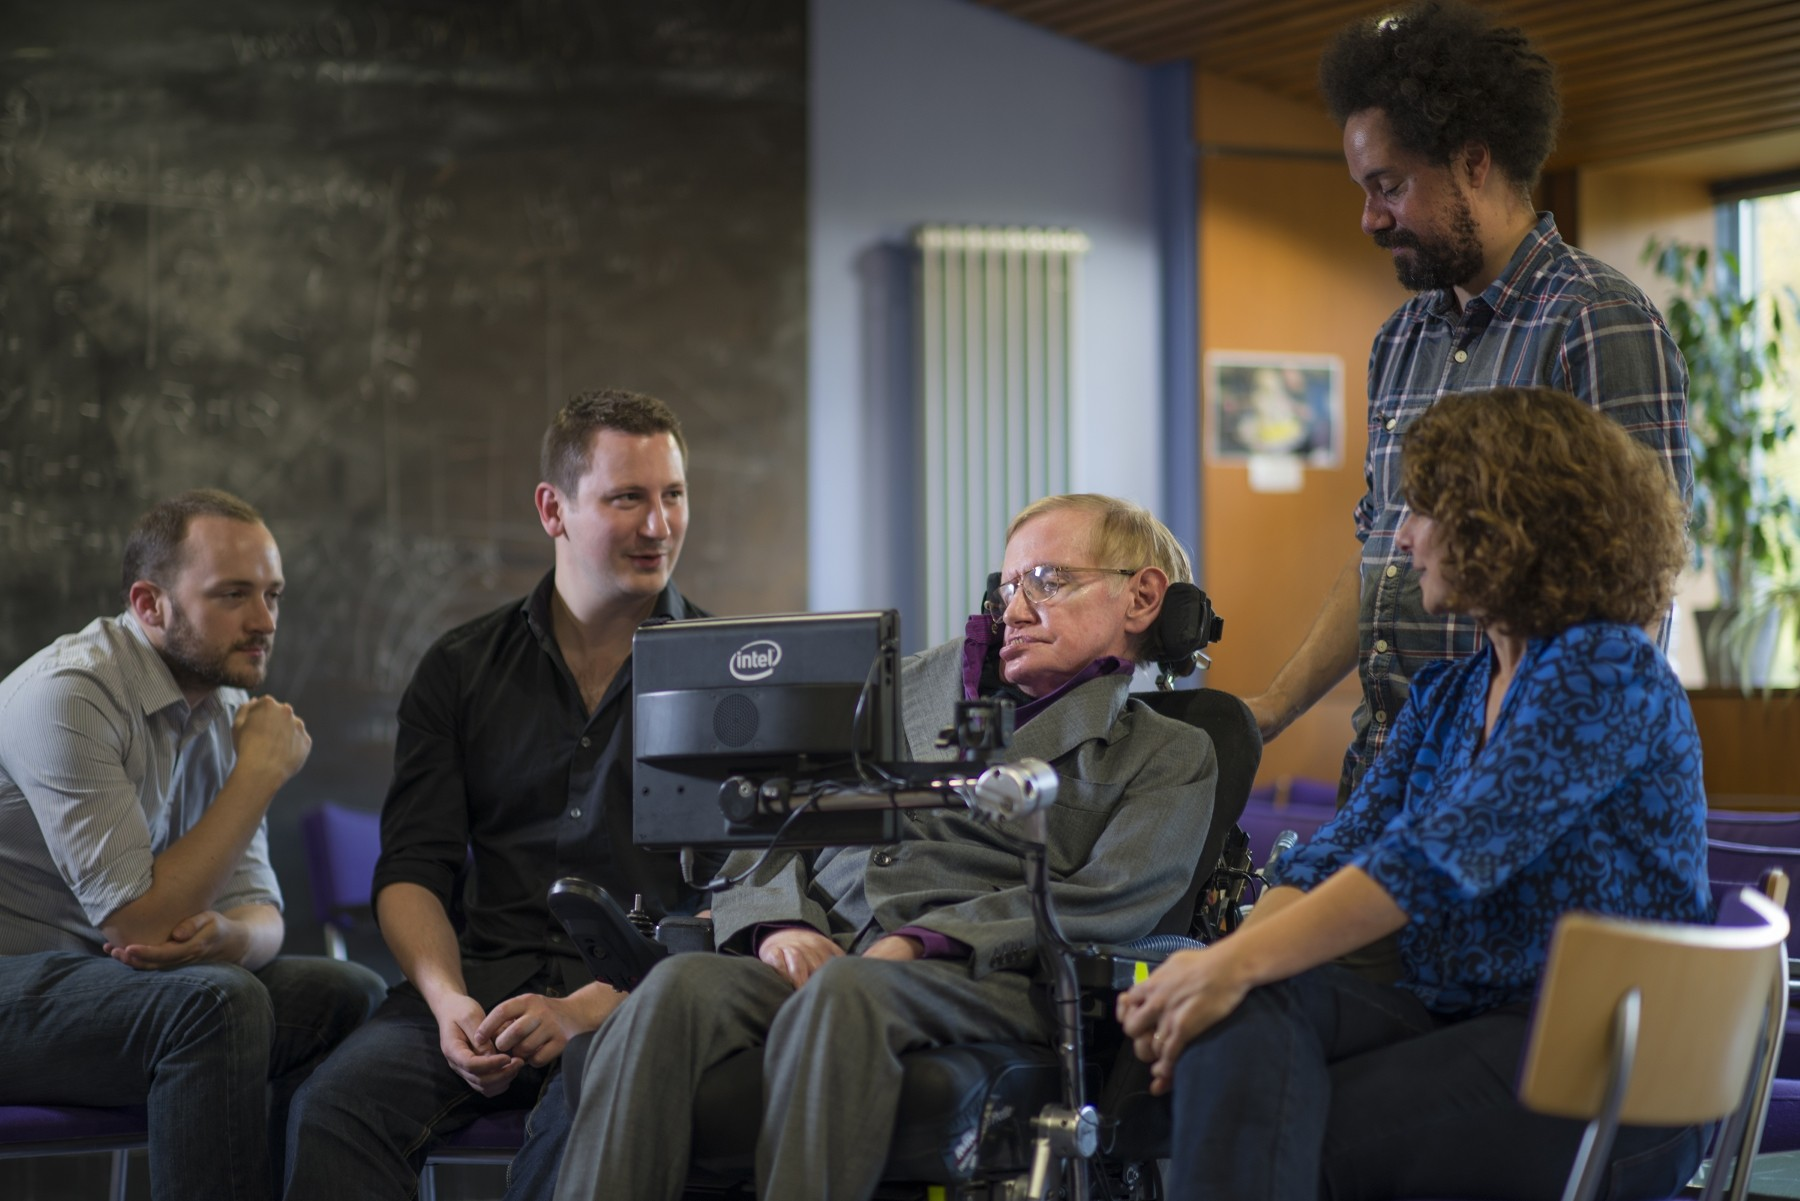 Intel Creates New Communication System for Prof. Stephen Hawking